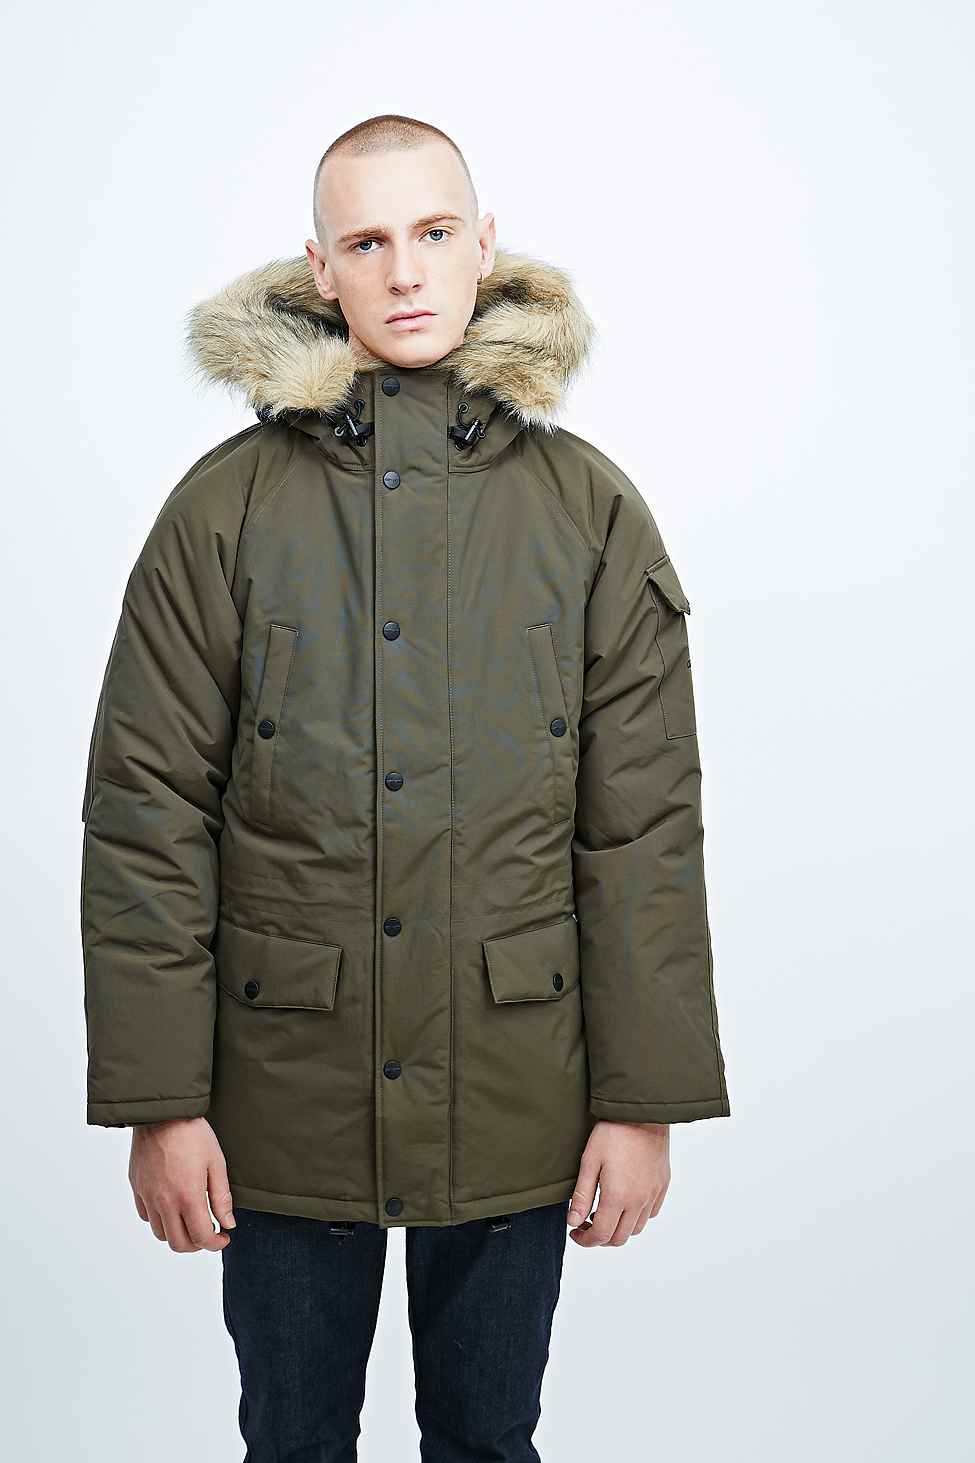 lyst carhartt anchorage parka in cypress green in green. Black Bedroom Furniture Sets. Home Design Ideas